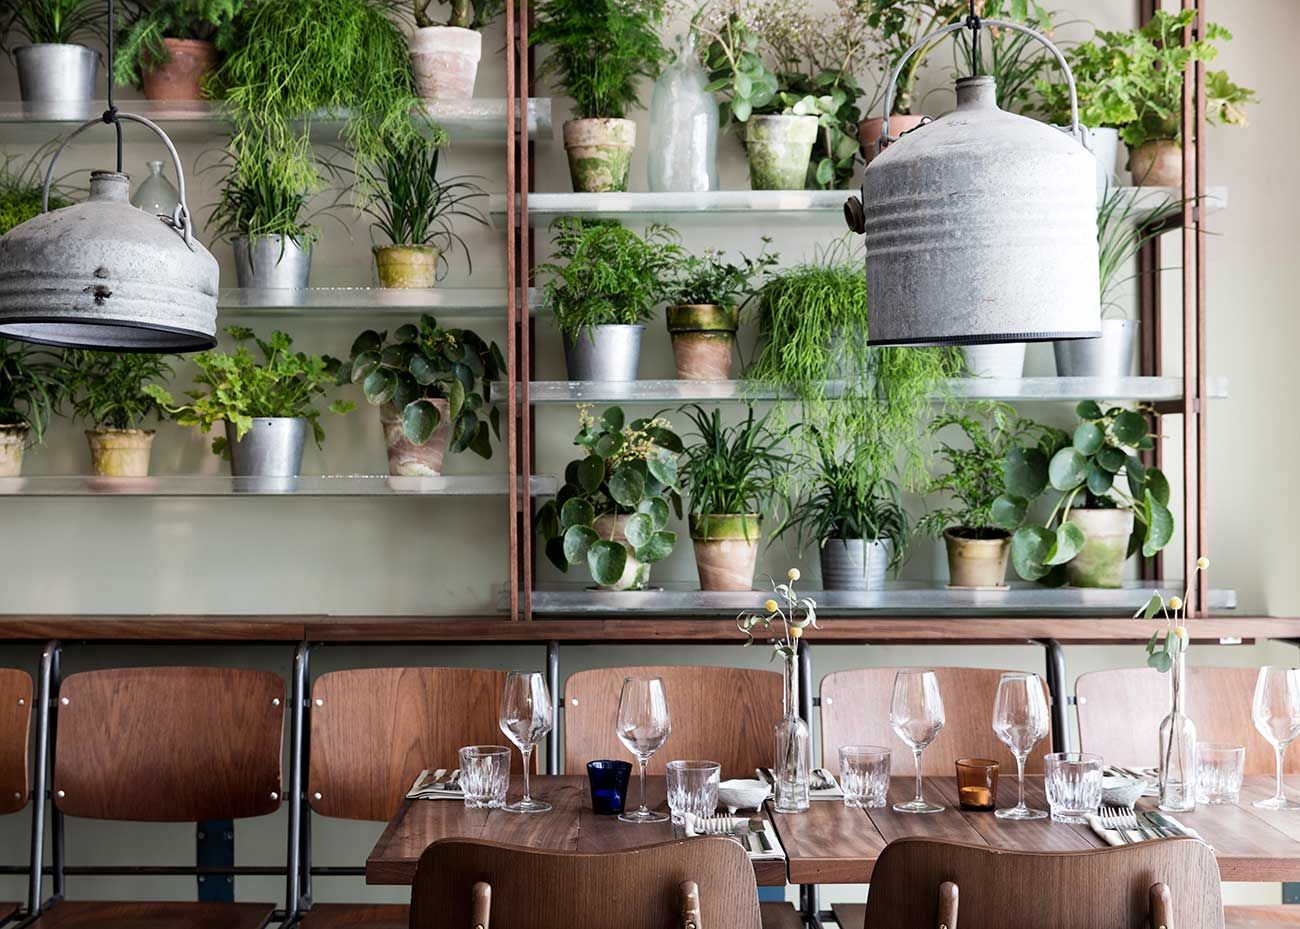 new green restaurant väkst in copenhagen (ems designblogg) | best